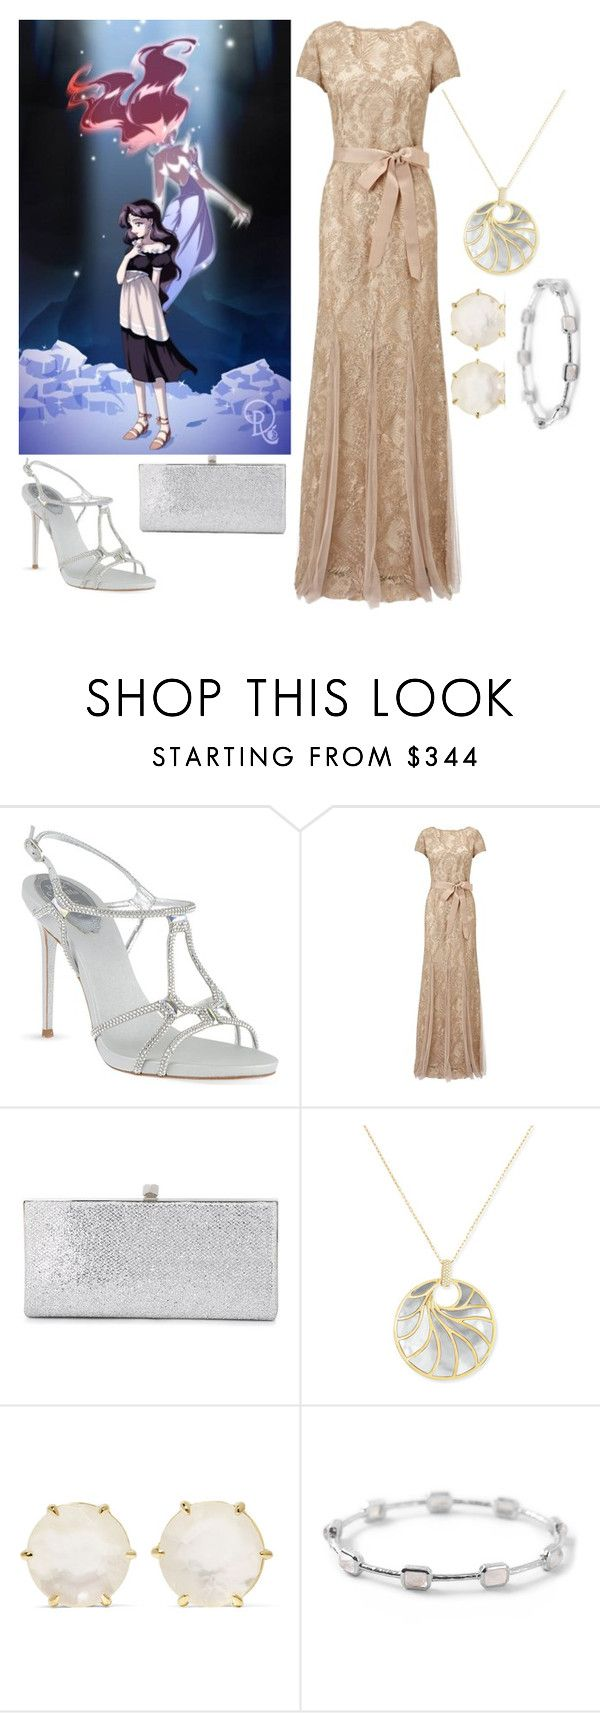 """Pretty Soldier Sailor Moon Dark Kingdom: Human Beryl"" by becka-ramey on Polyvore featuring René Caovilla, Adrianna Papell, Jimmy Choo, Frederic Sage and Ippolita"